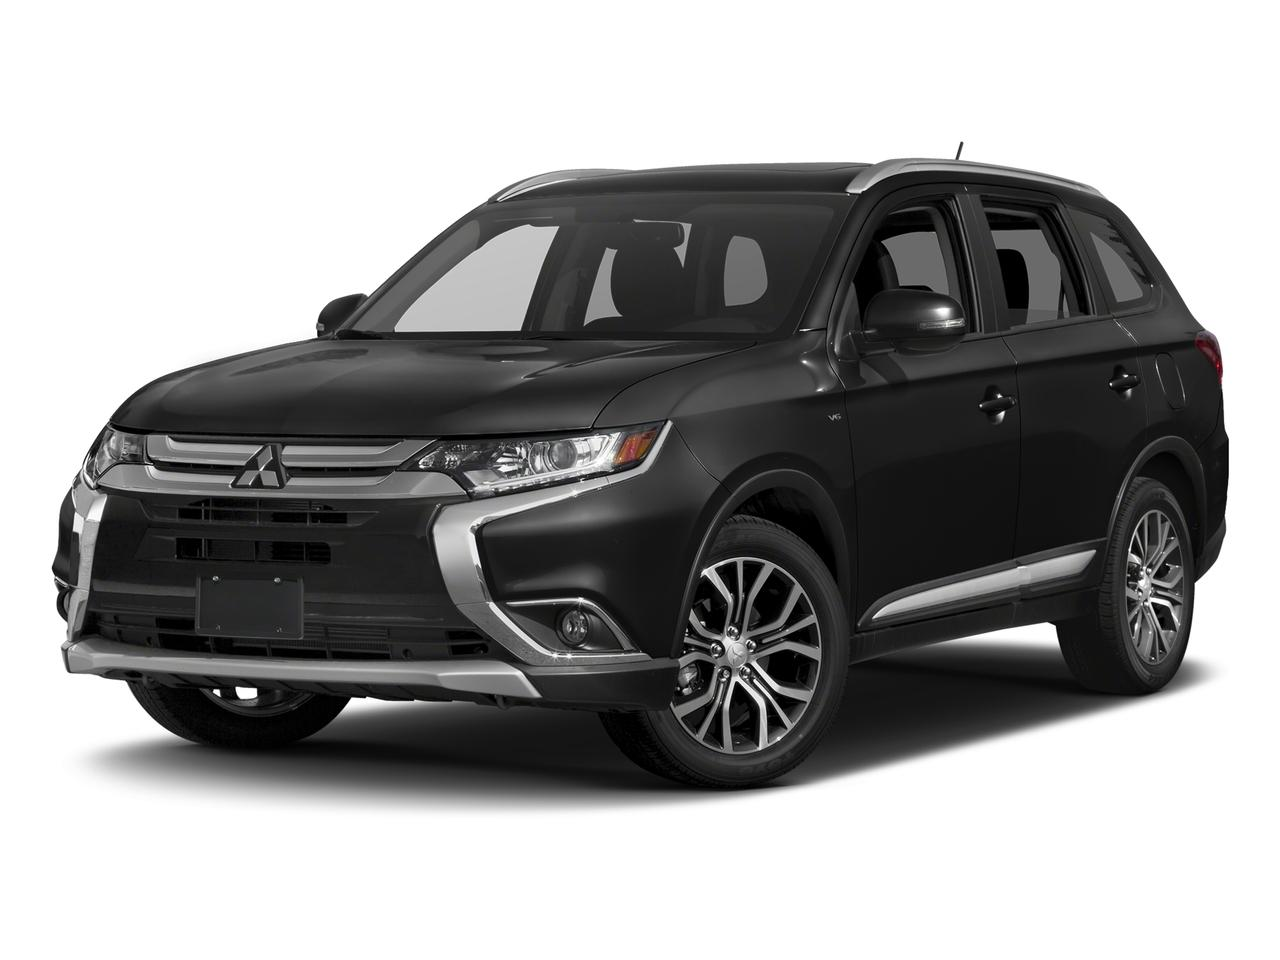 2017 Mitsubishi Outlander Vehicle Photo in Peoria, IL 61615